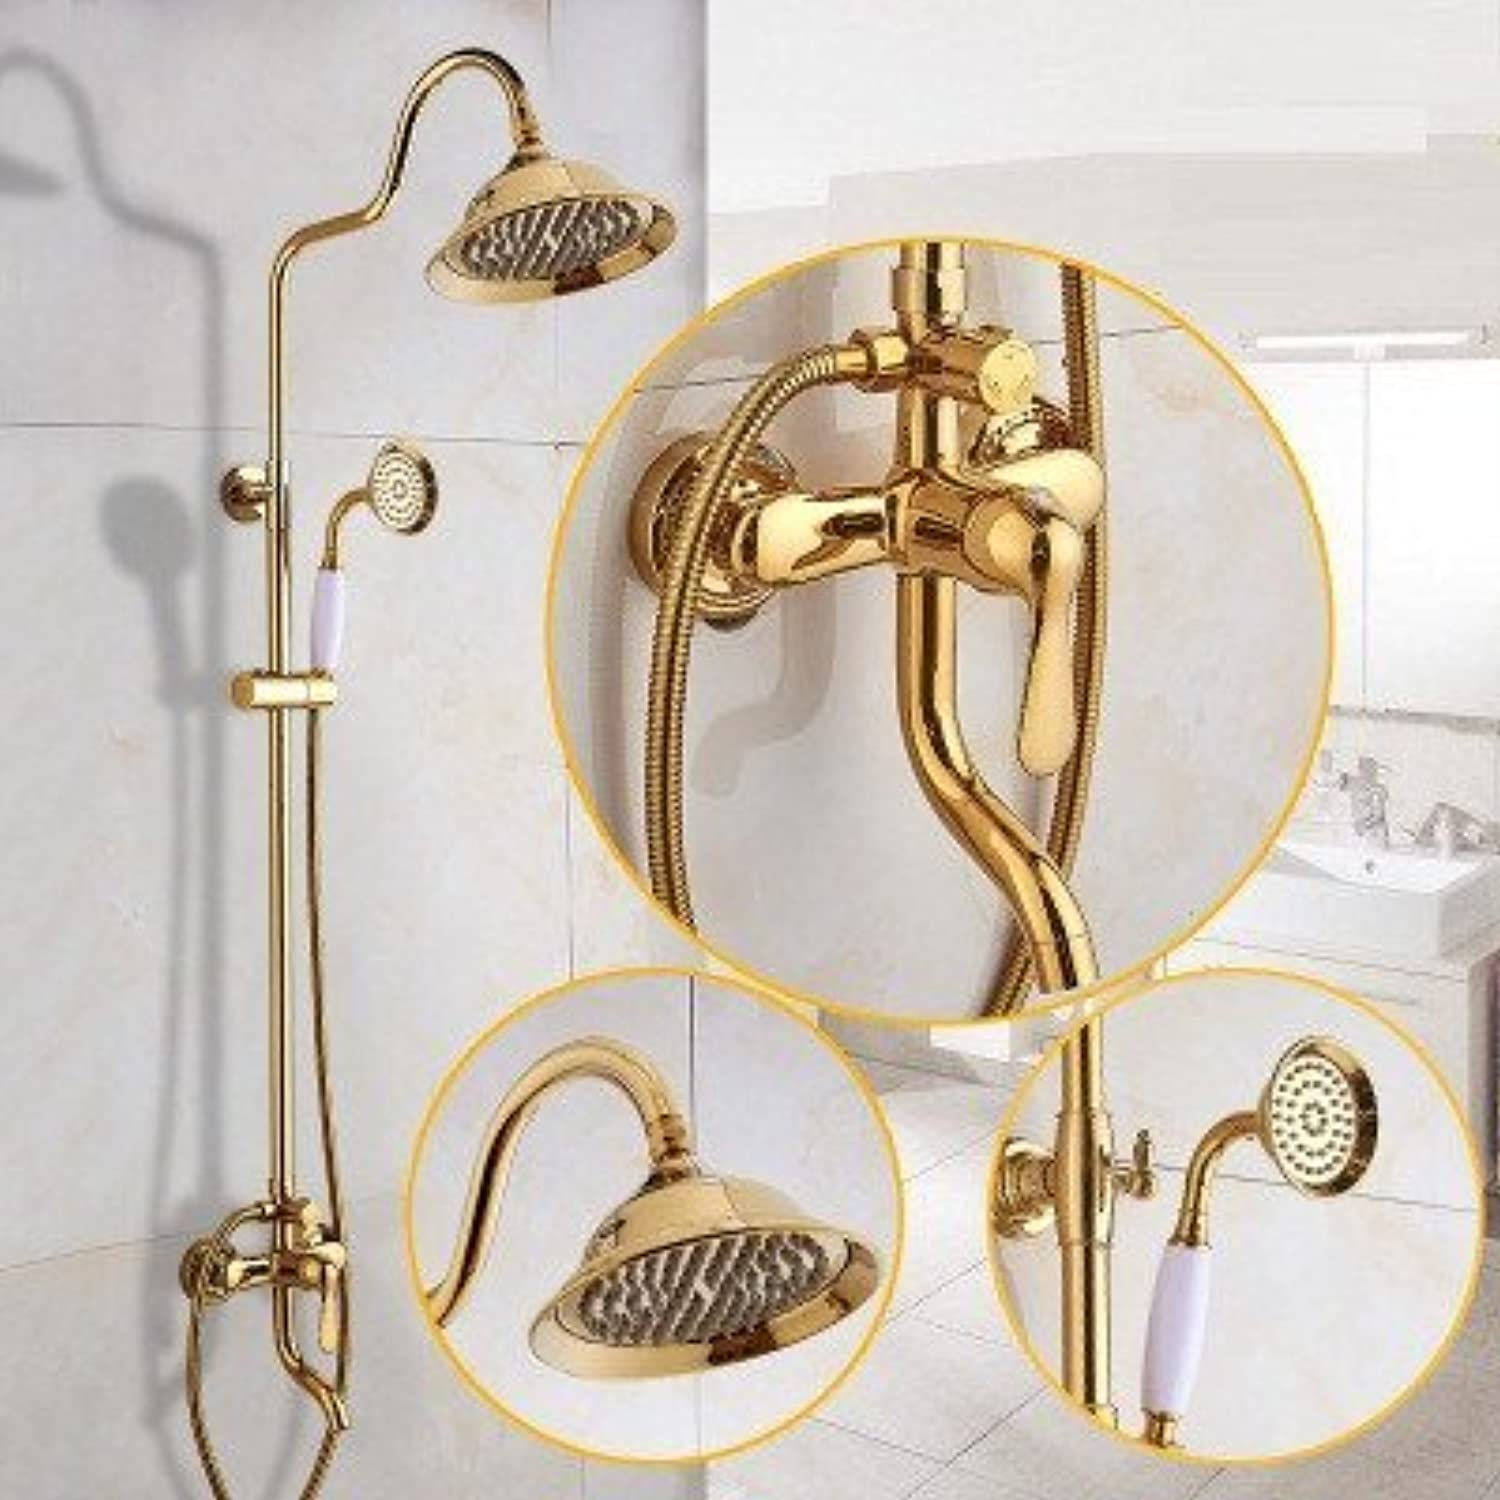 Antique gold Shower Shower Shower Toilets European Bathroom from Copper to Hunting of Cold Tap Water Mixing Valve